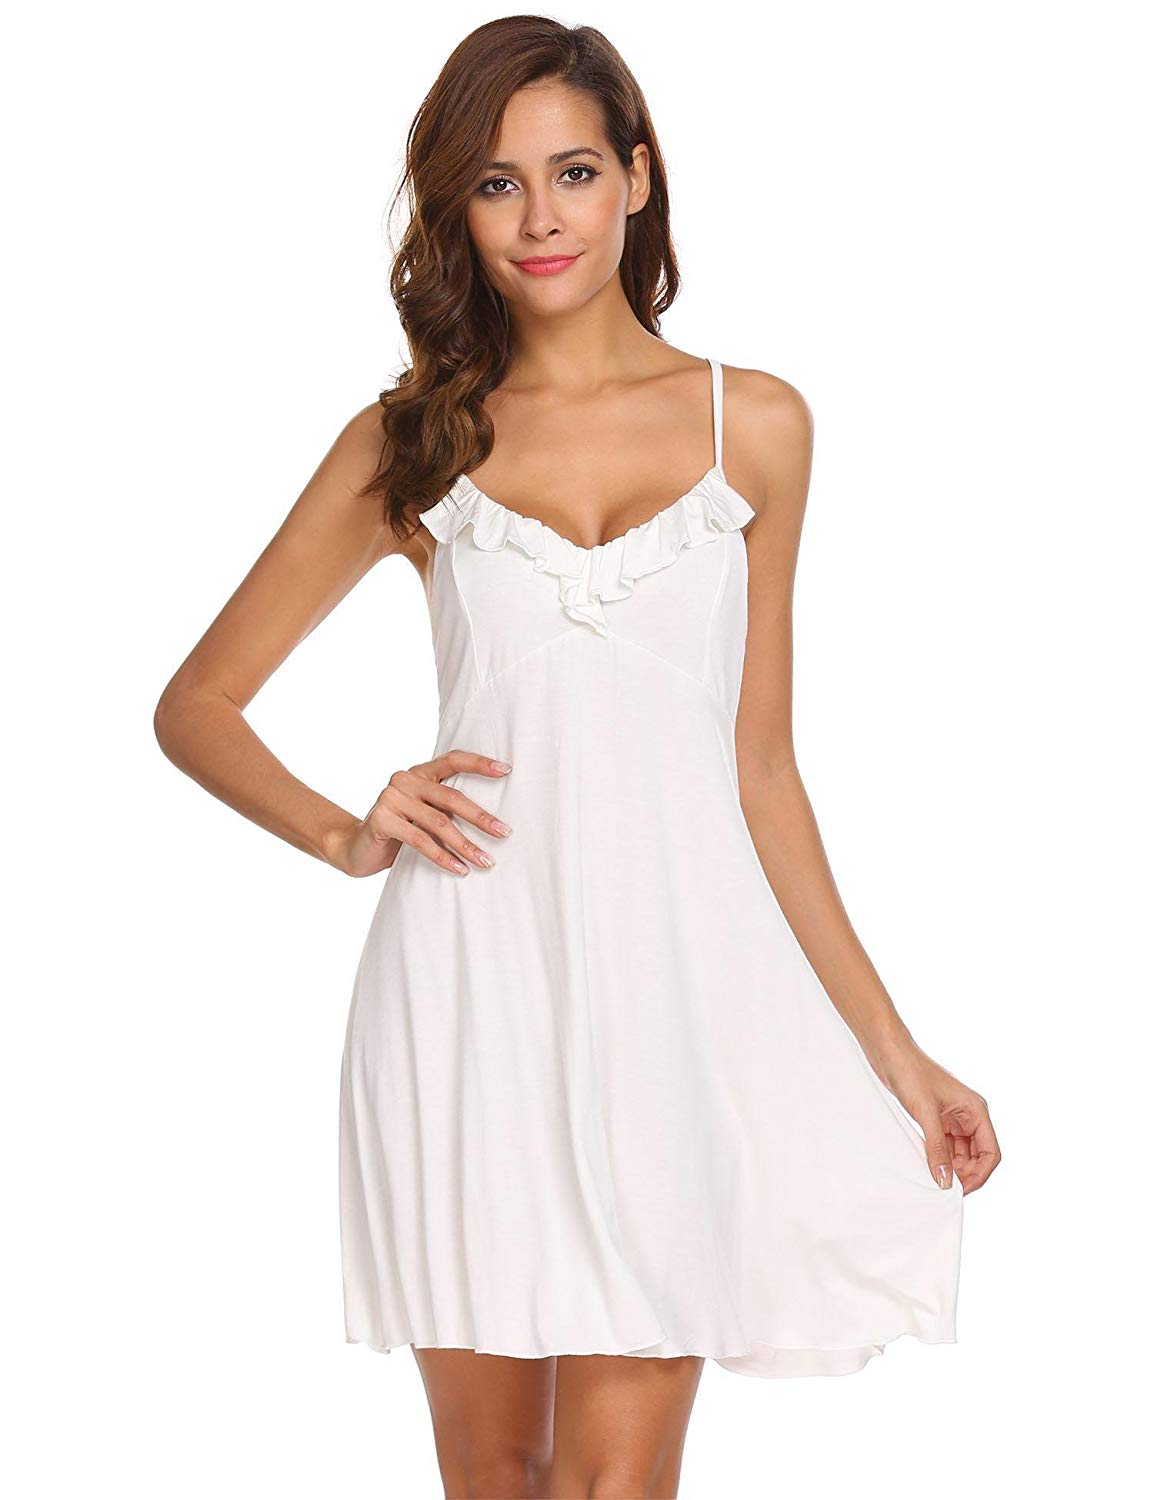 15c530a41ae Get Quotations · Langle Soft Nightgown Women s Comfy Nightwear Chemise Full  Slip Under Dress ...